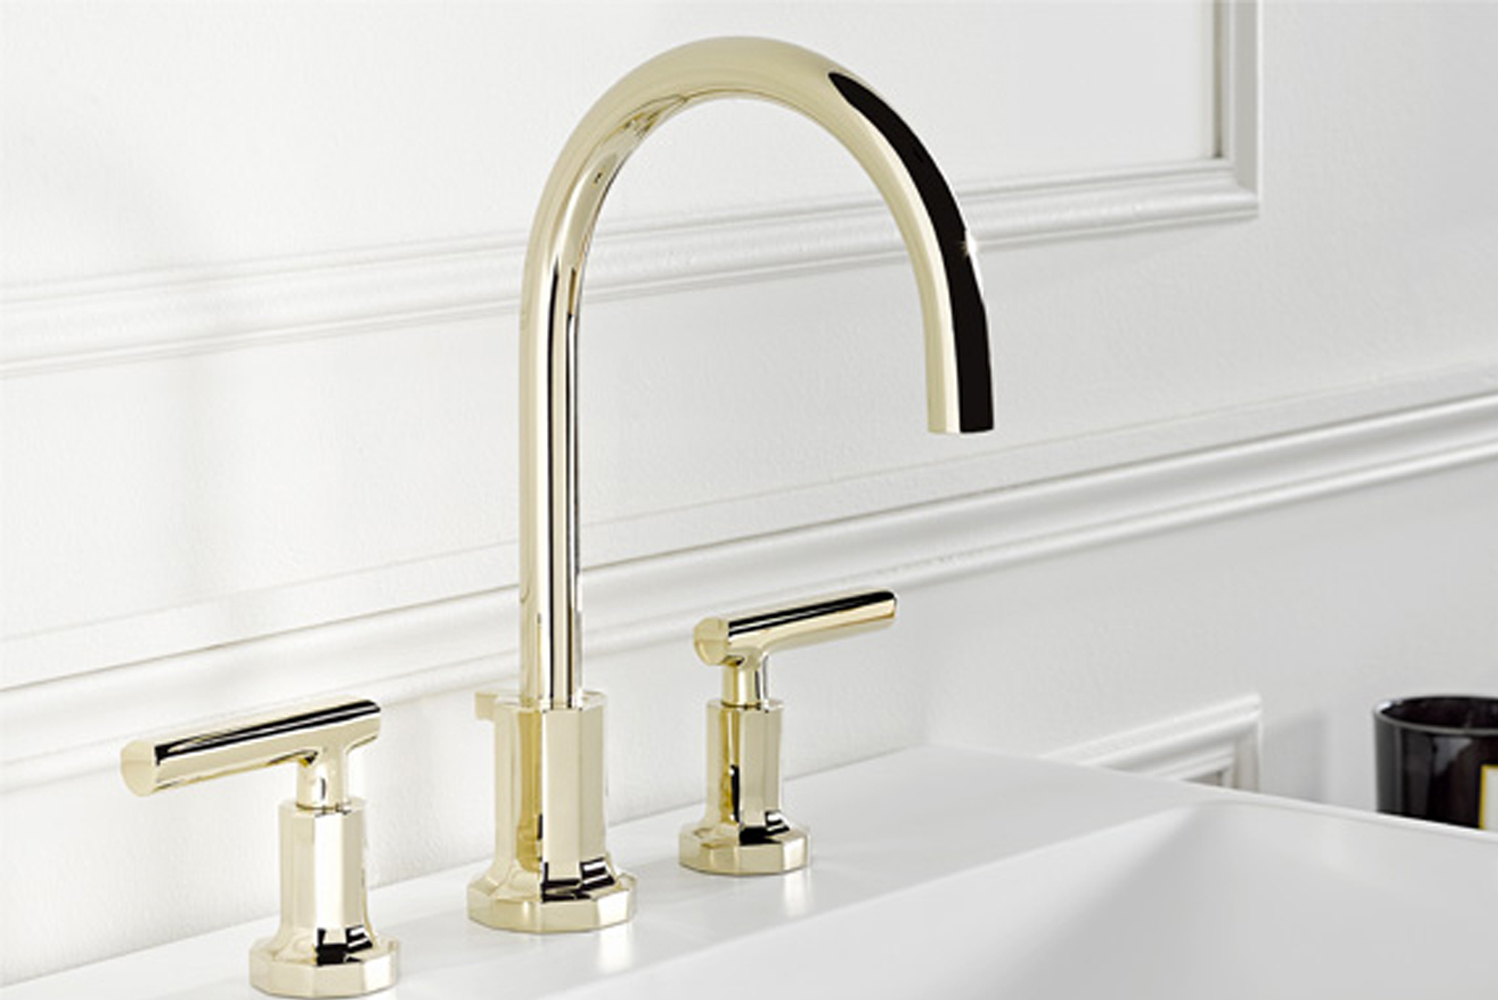 On top of the faucet's 10-sided faceted base sits a trident-shaped brace.